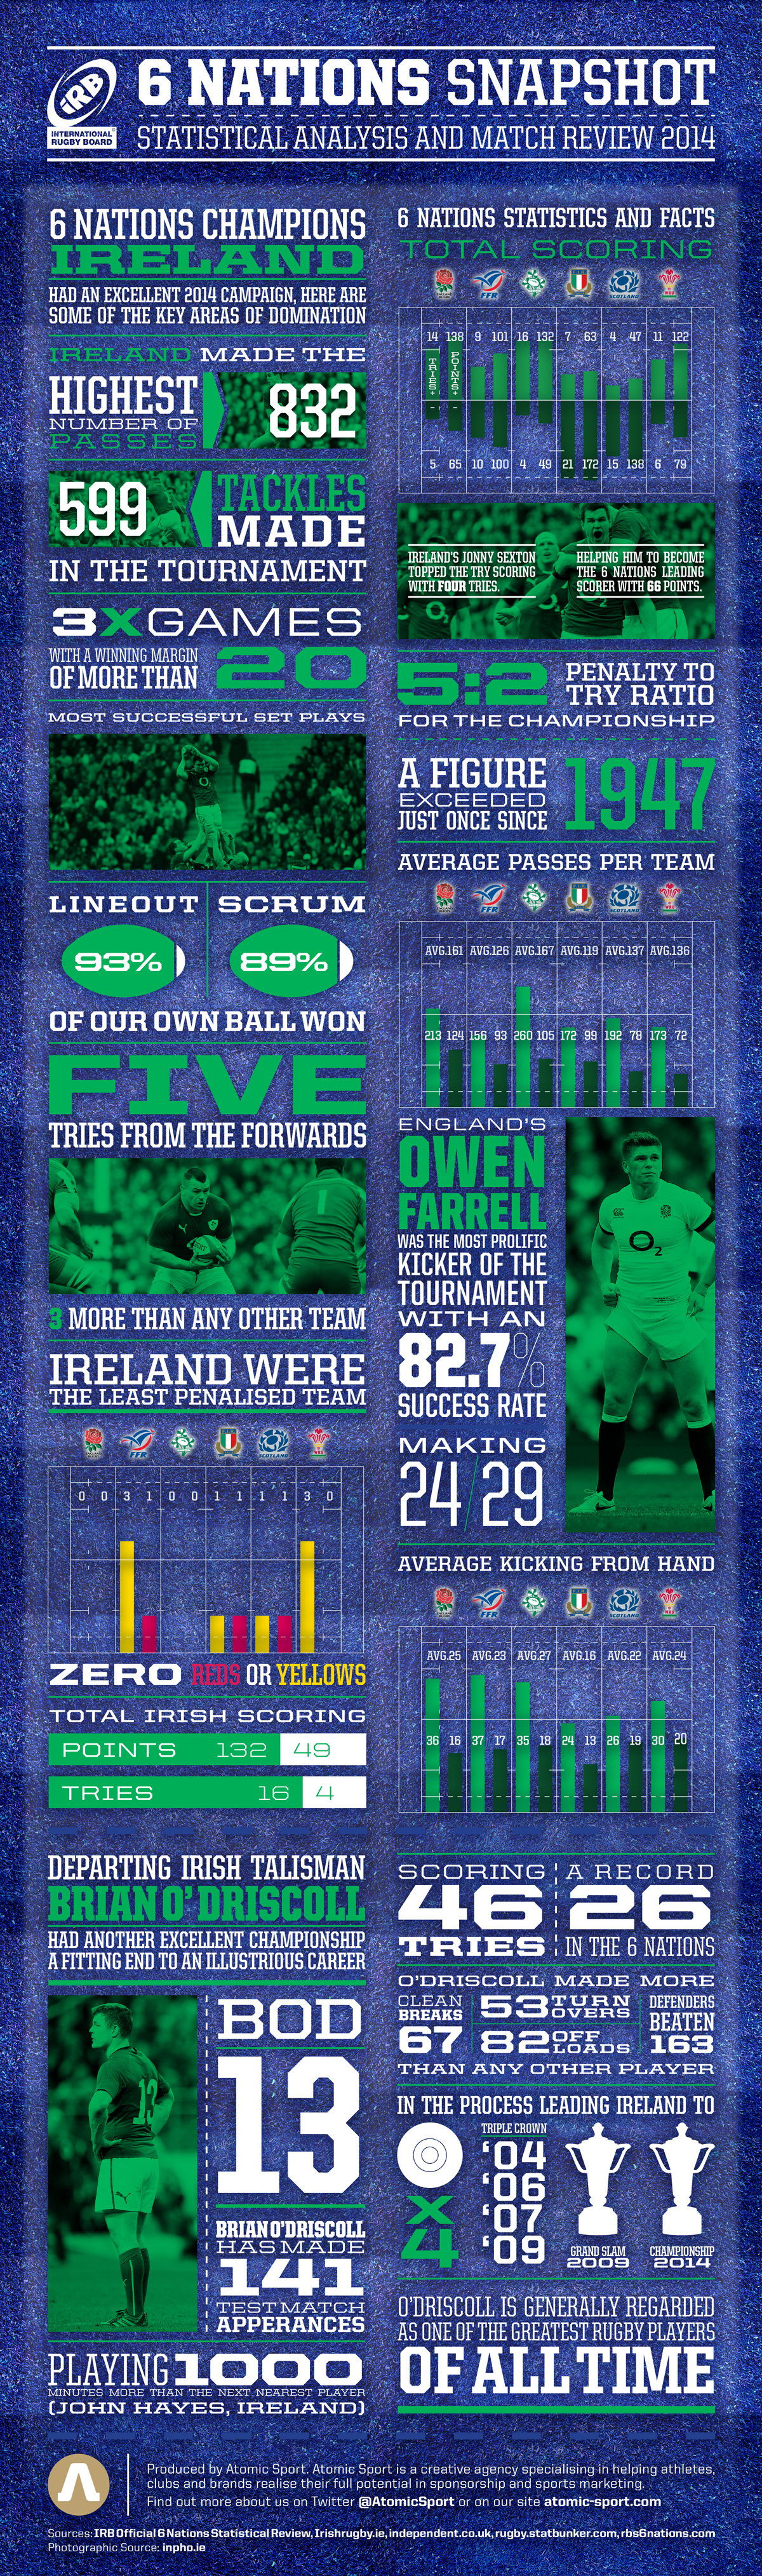 RBS-6-NATIONS-INFOGRAPHIC-FA-WEB